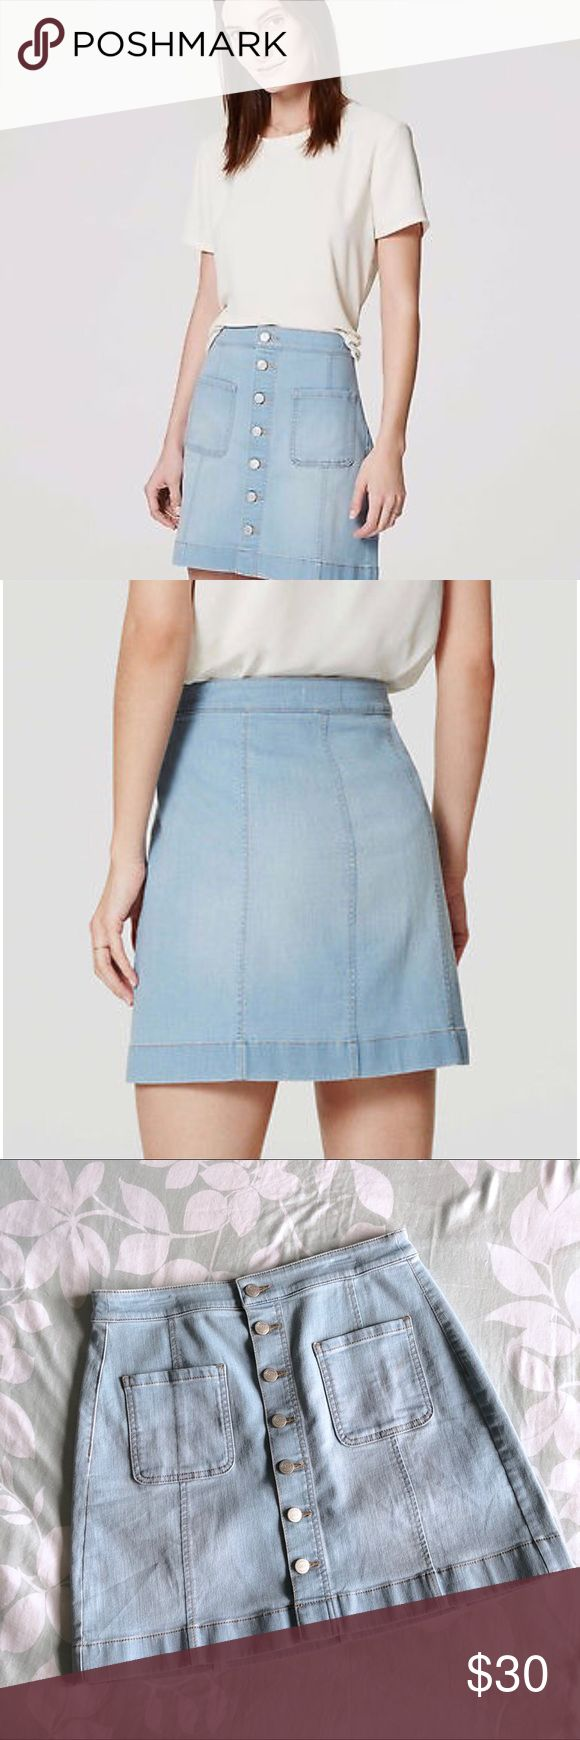 "Loft Front Button Denim Skirt Indulge your denim mood in the most femme way with this button down beauty. Button front. Front patch pockets. Seamed paneling. 17"" long.  92% Cotton, 7% Polyester, 1% Elastane (has some stretch!)   Pet & smoke-free home   No trades   I love offers ✨ Posh Ambassador ✨ LOFT Skirts"